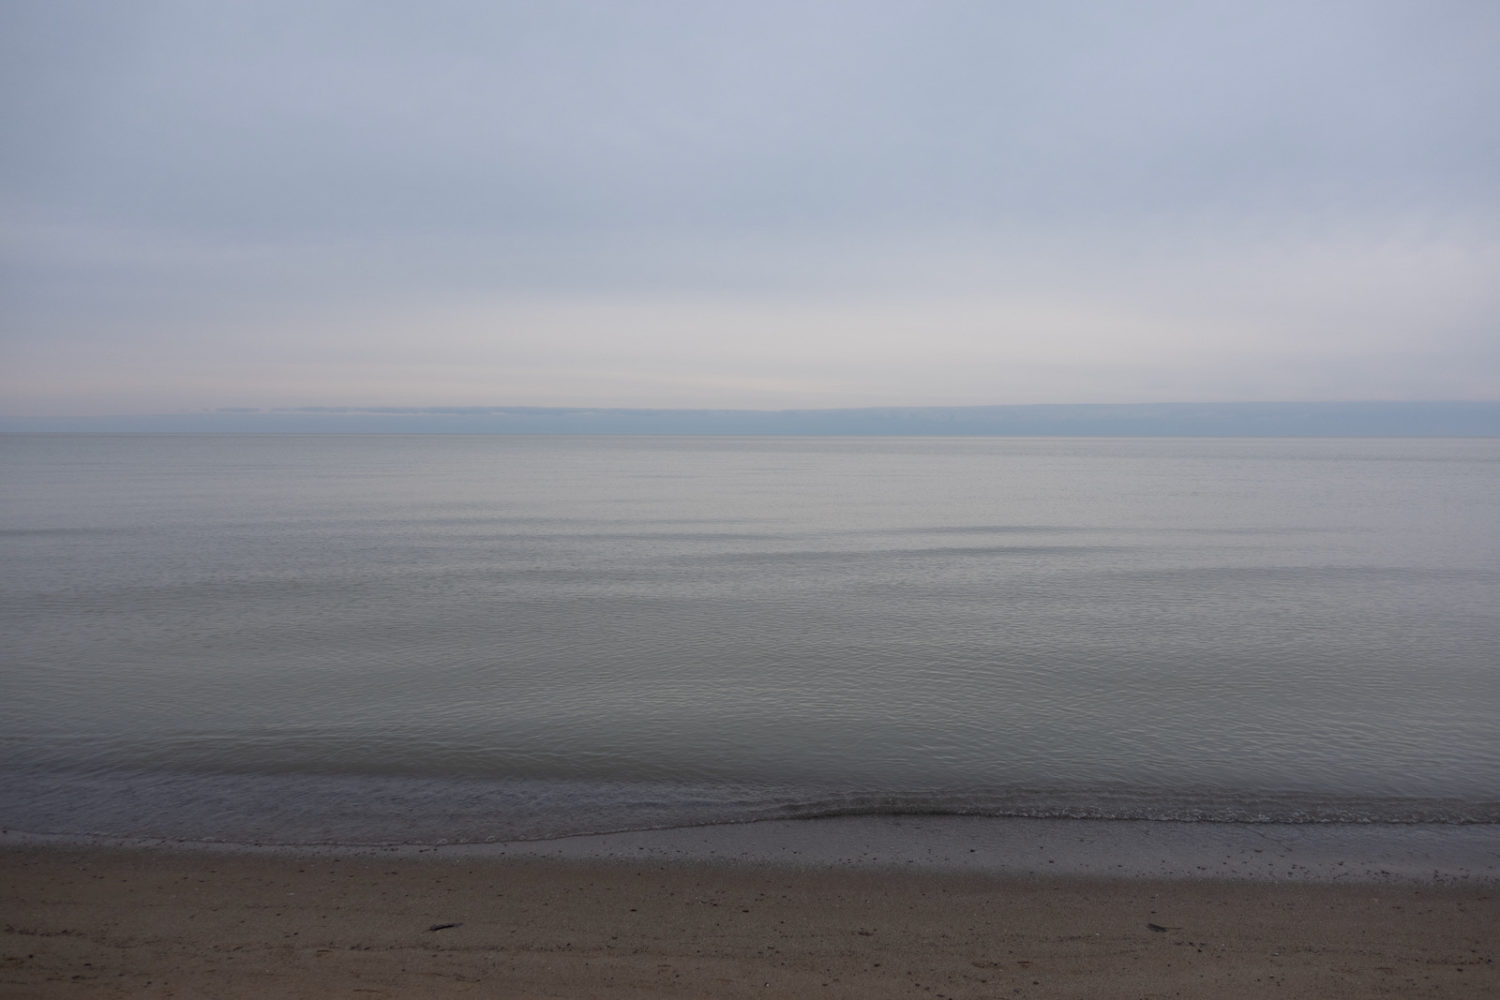 Lake Ontario on New Year's Day 2021